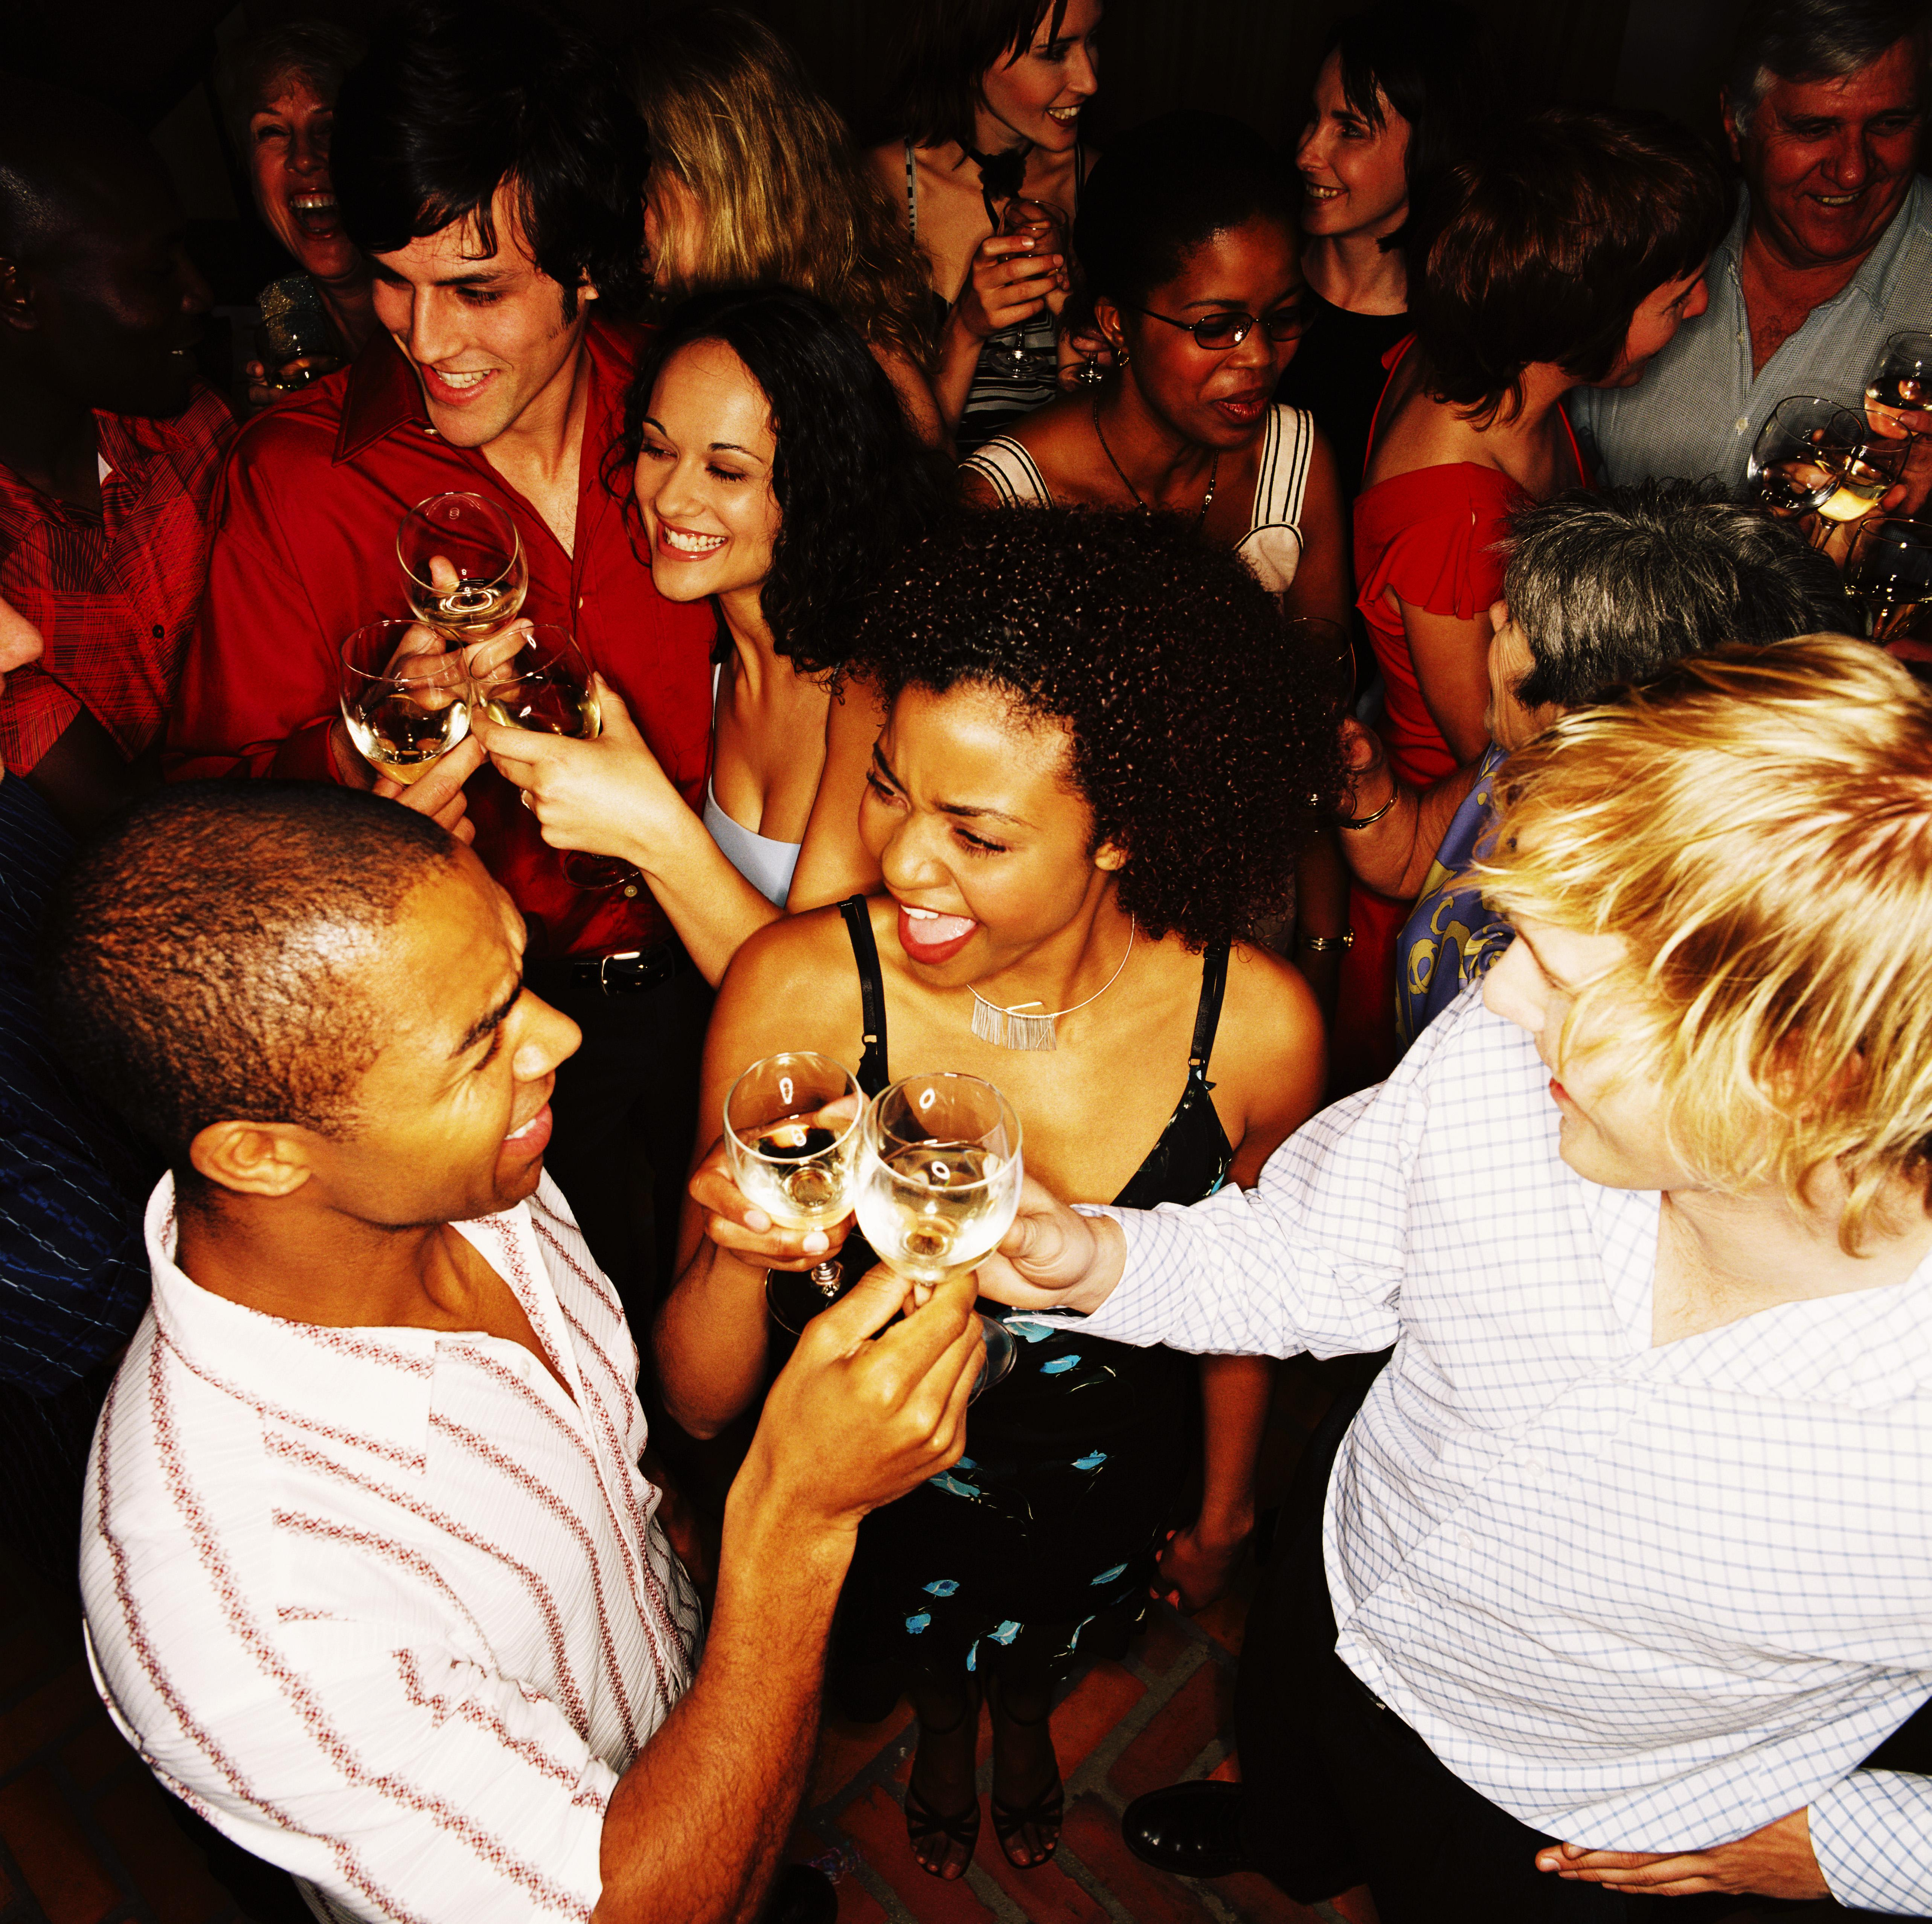 high angle view of people enjoying a party